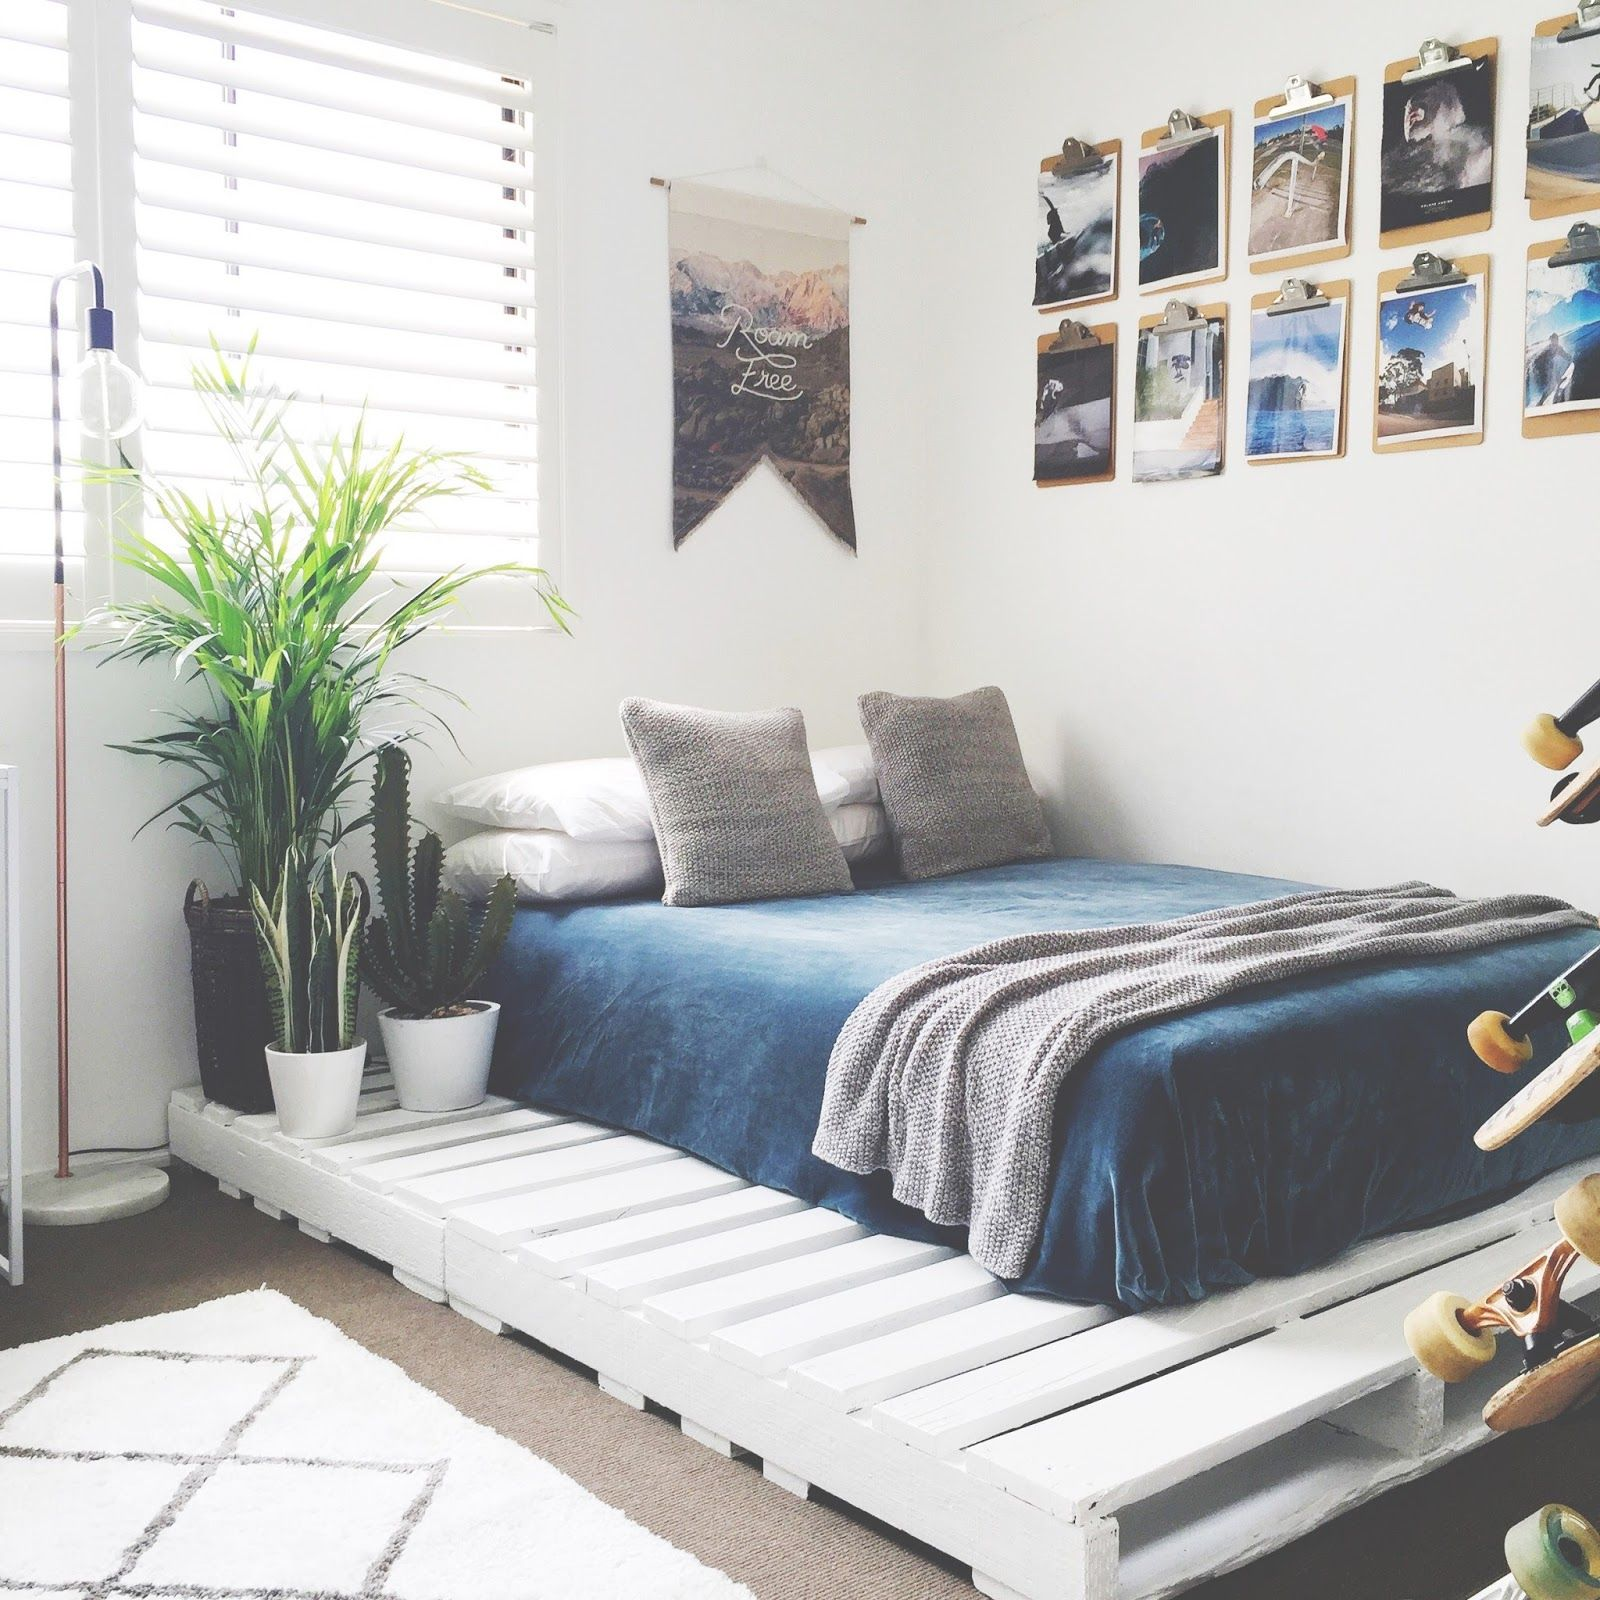 Sleep On A Pallet Stuff To Try Bedroom Bedroom Decor Room